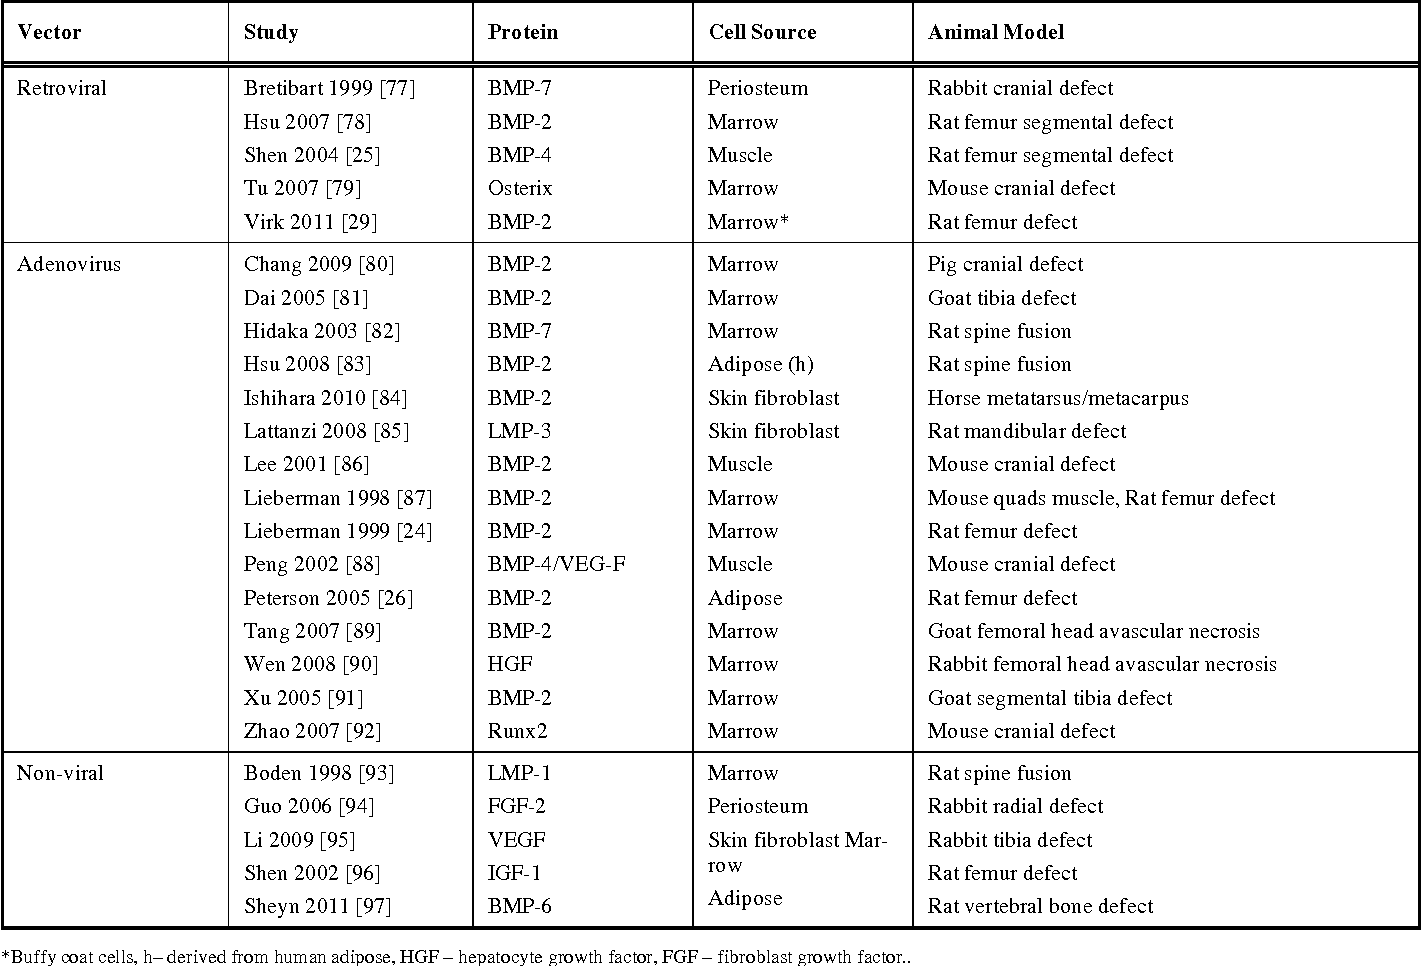 Table 2. List of studies reporting on ex vivo techniques